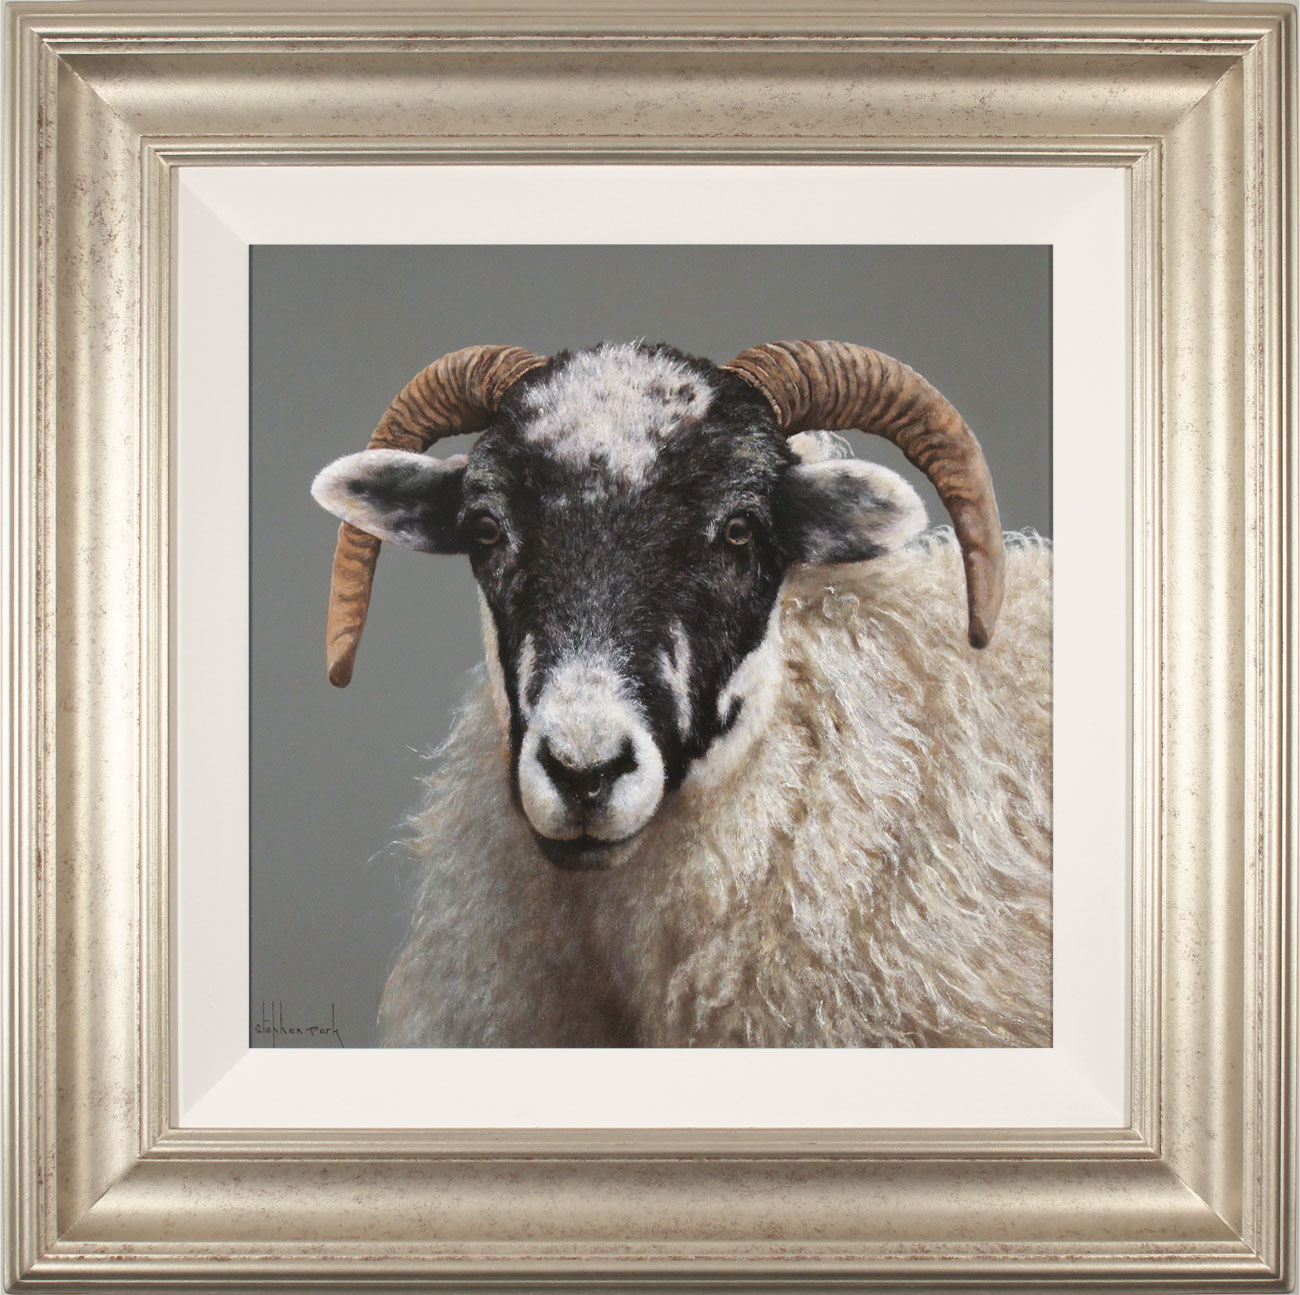 Stephen Park, Original oil painting on panel, Ewe, click to enlarge